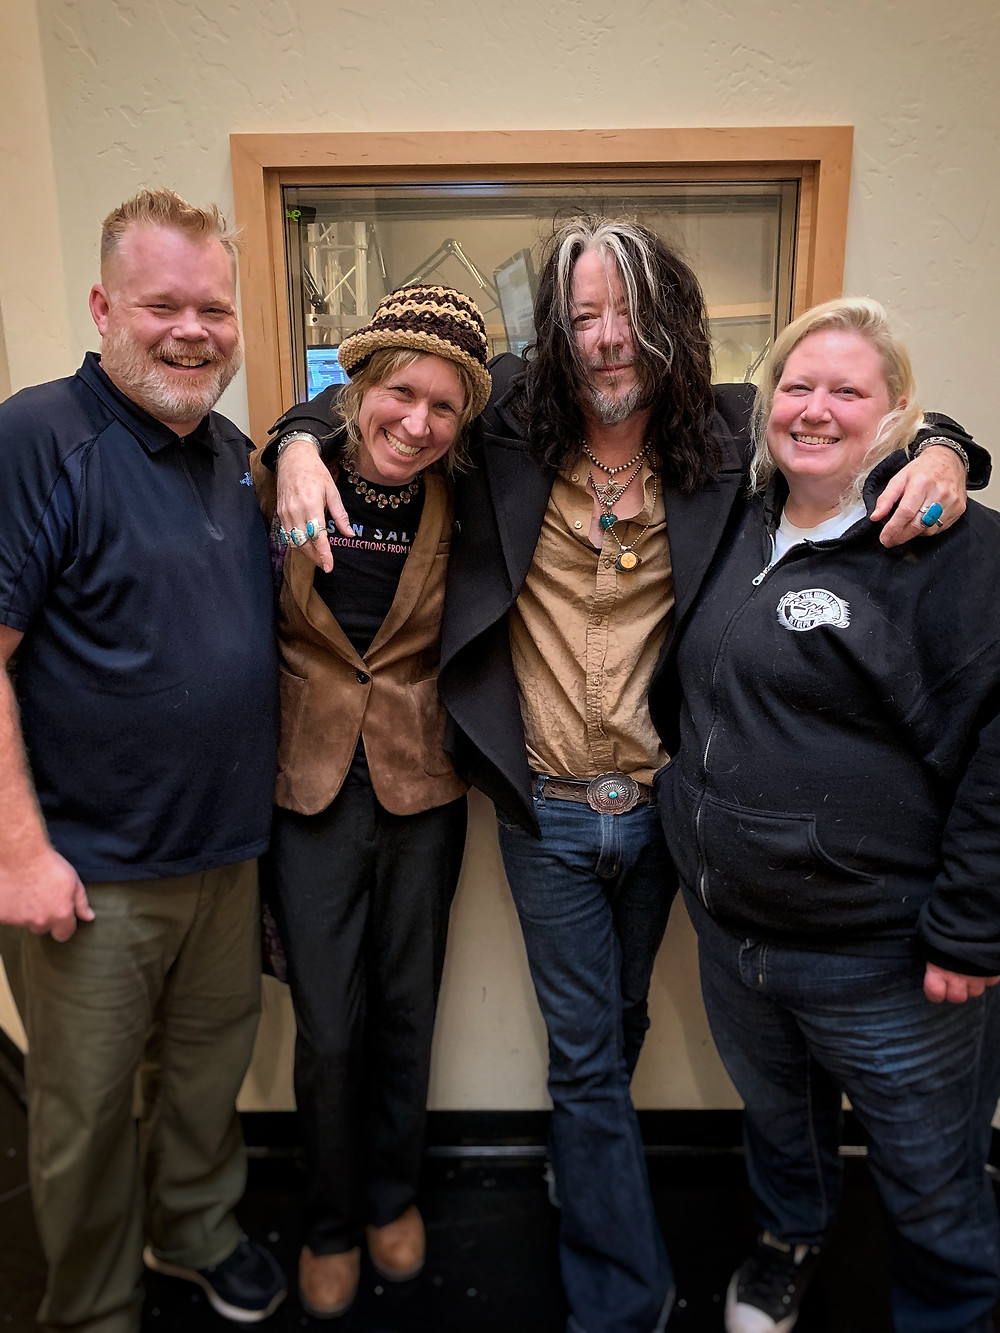 KLPX radio interview: (from l. host Frank Brinsley, Maggie, Brian and show co-host Kristine Levine